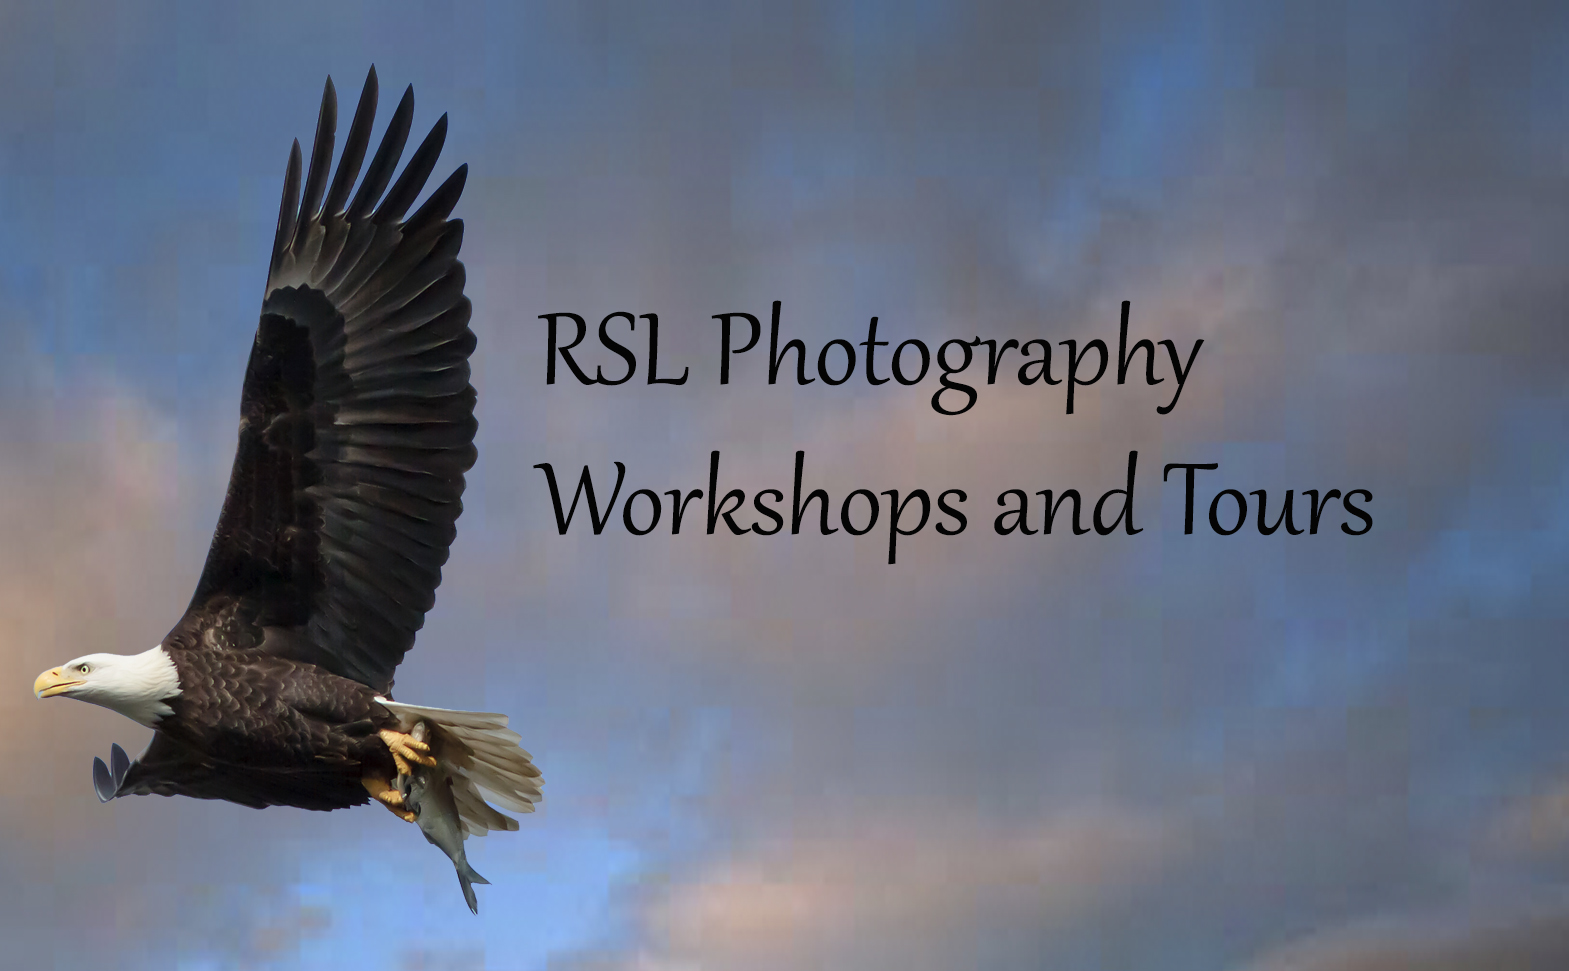 RSL photography